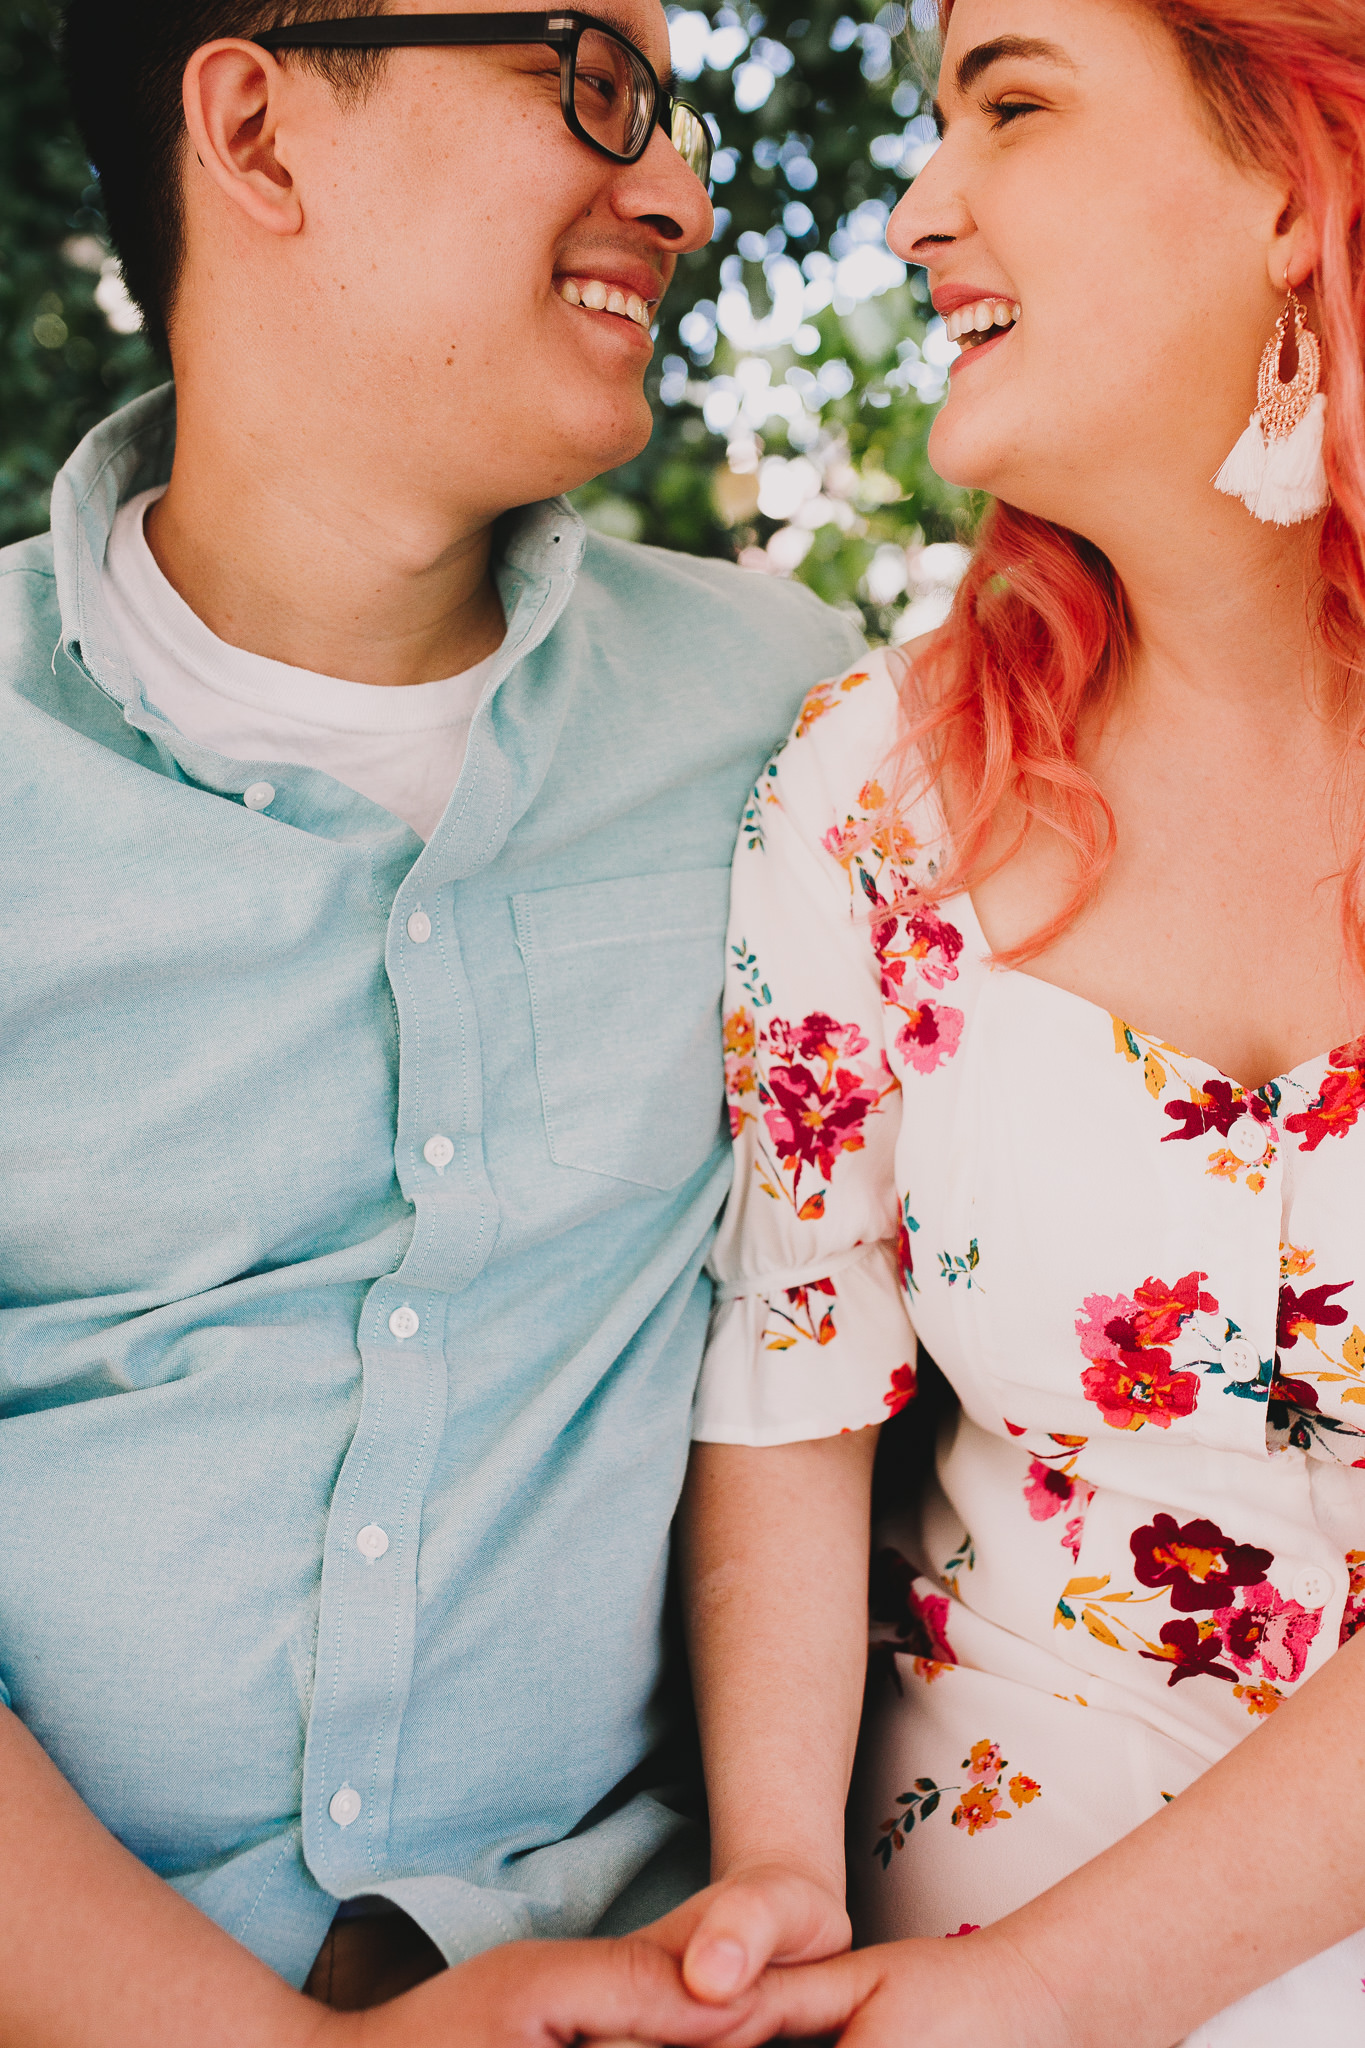 Archer Inspired Photography Disneyland Engagement Wedding Session Southern California Kayla and Kevin Lifestyle Documentary-97.jpg